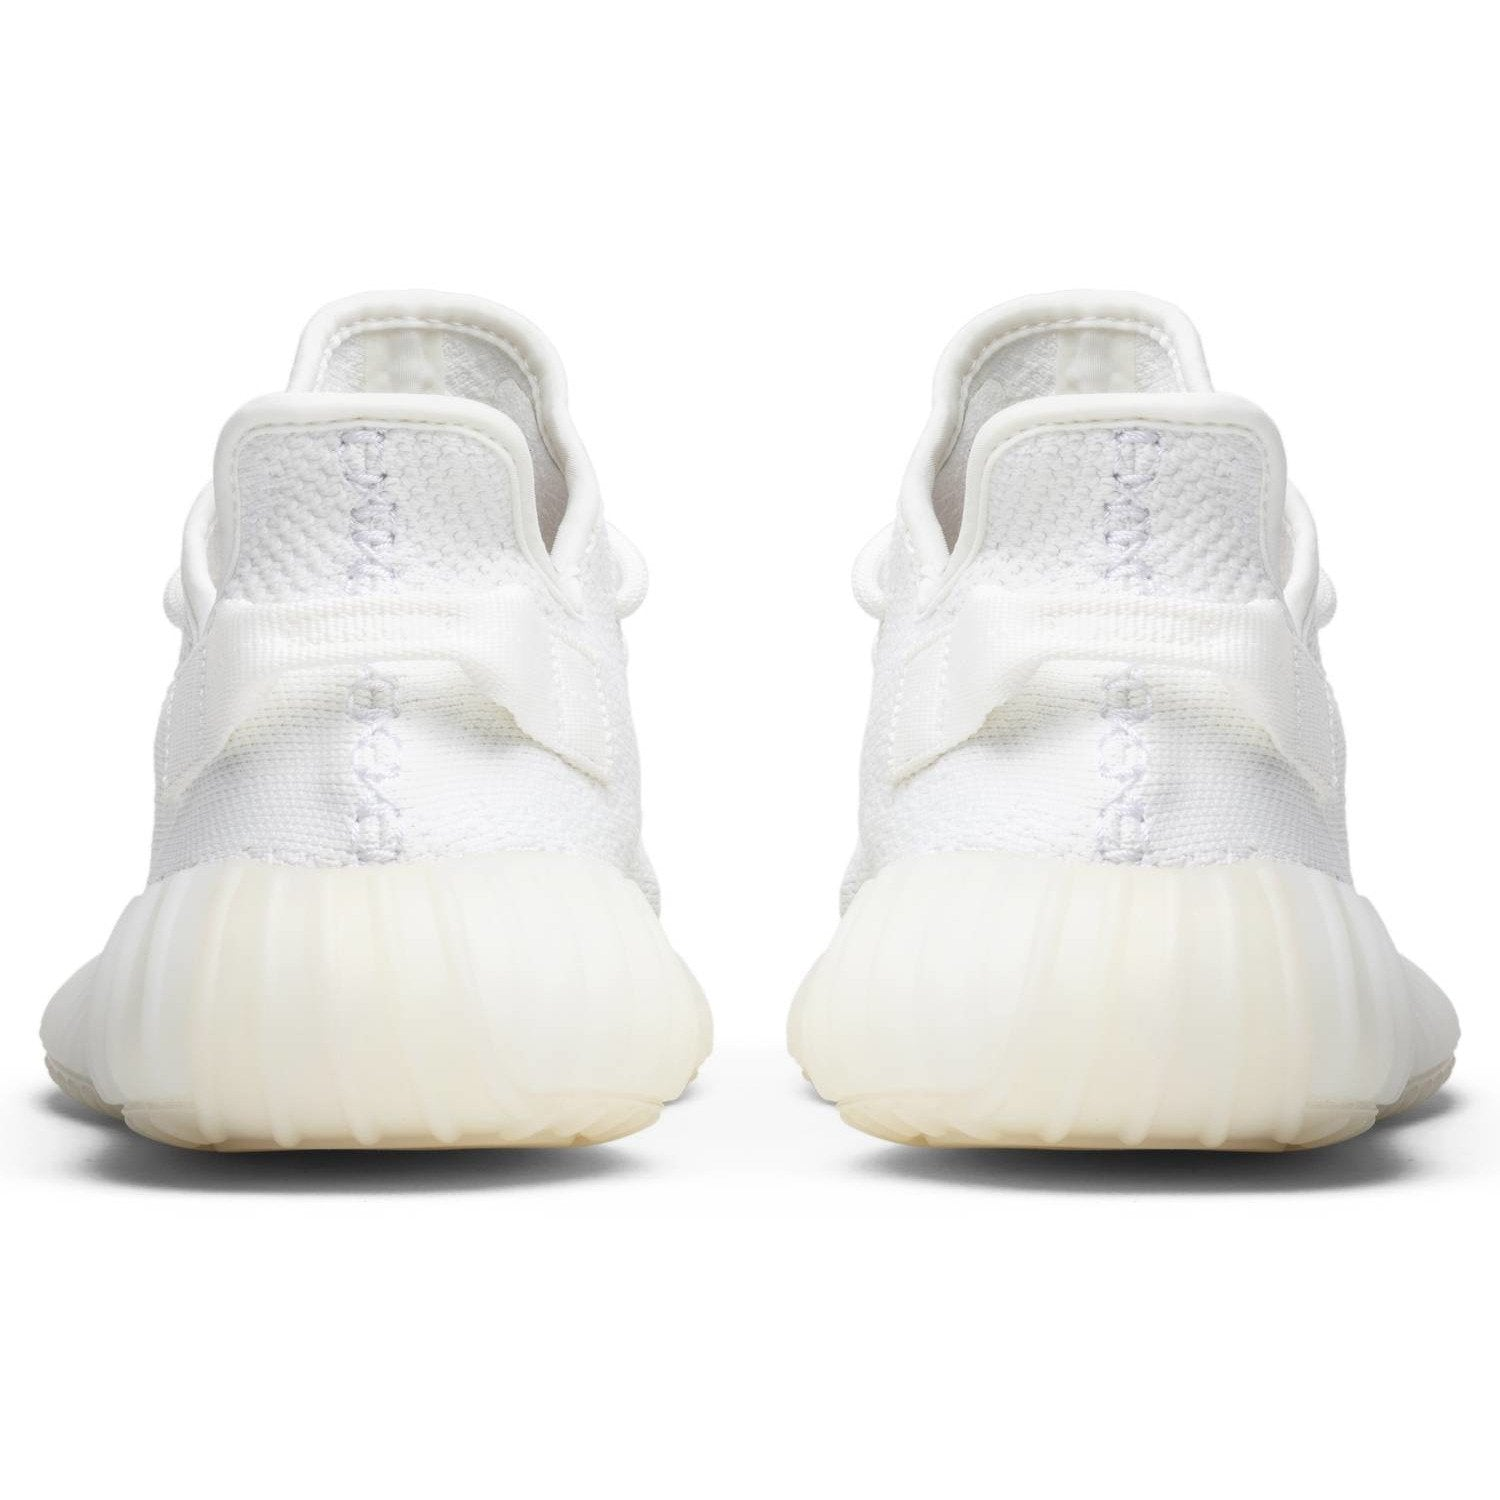 adidas Yeezy Boost 350 V2 'Cream White/Triple White' - After Burn